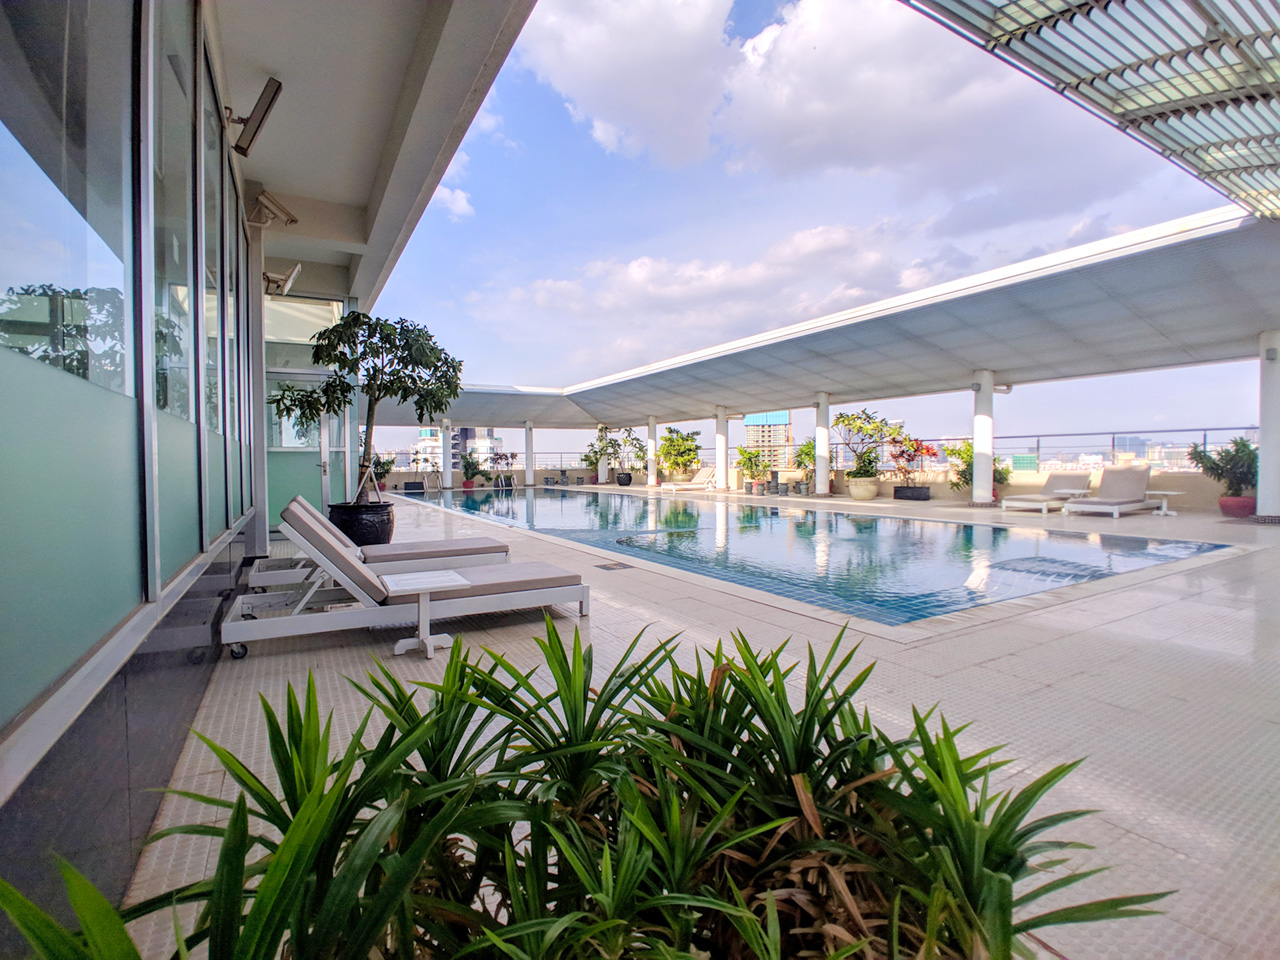 4 Beds penthouse apartment for rent @ Tuol Kork area